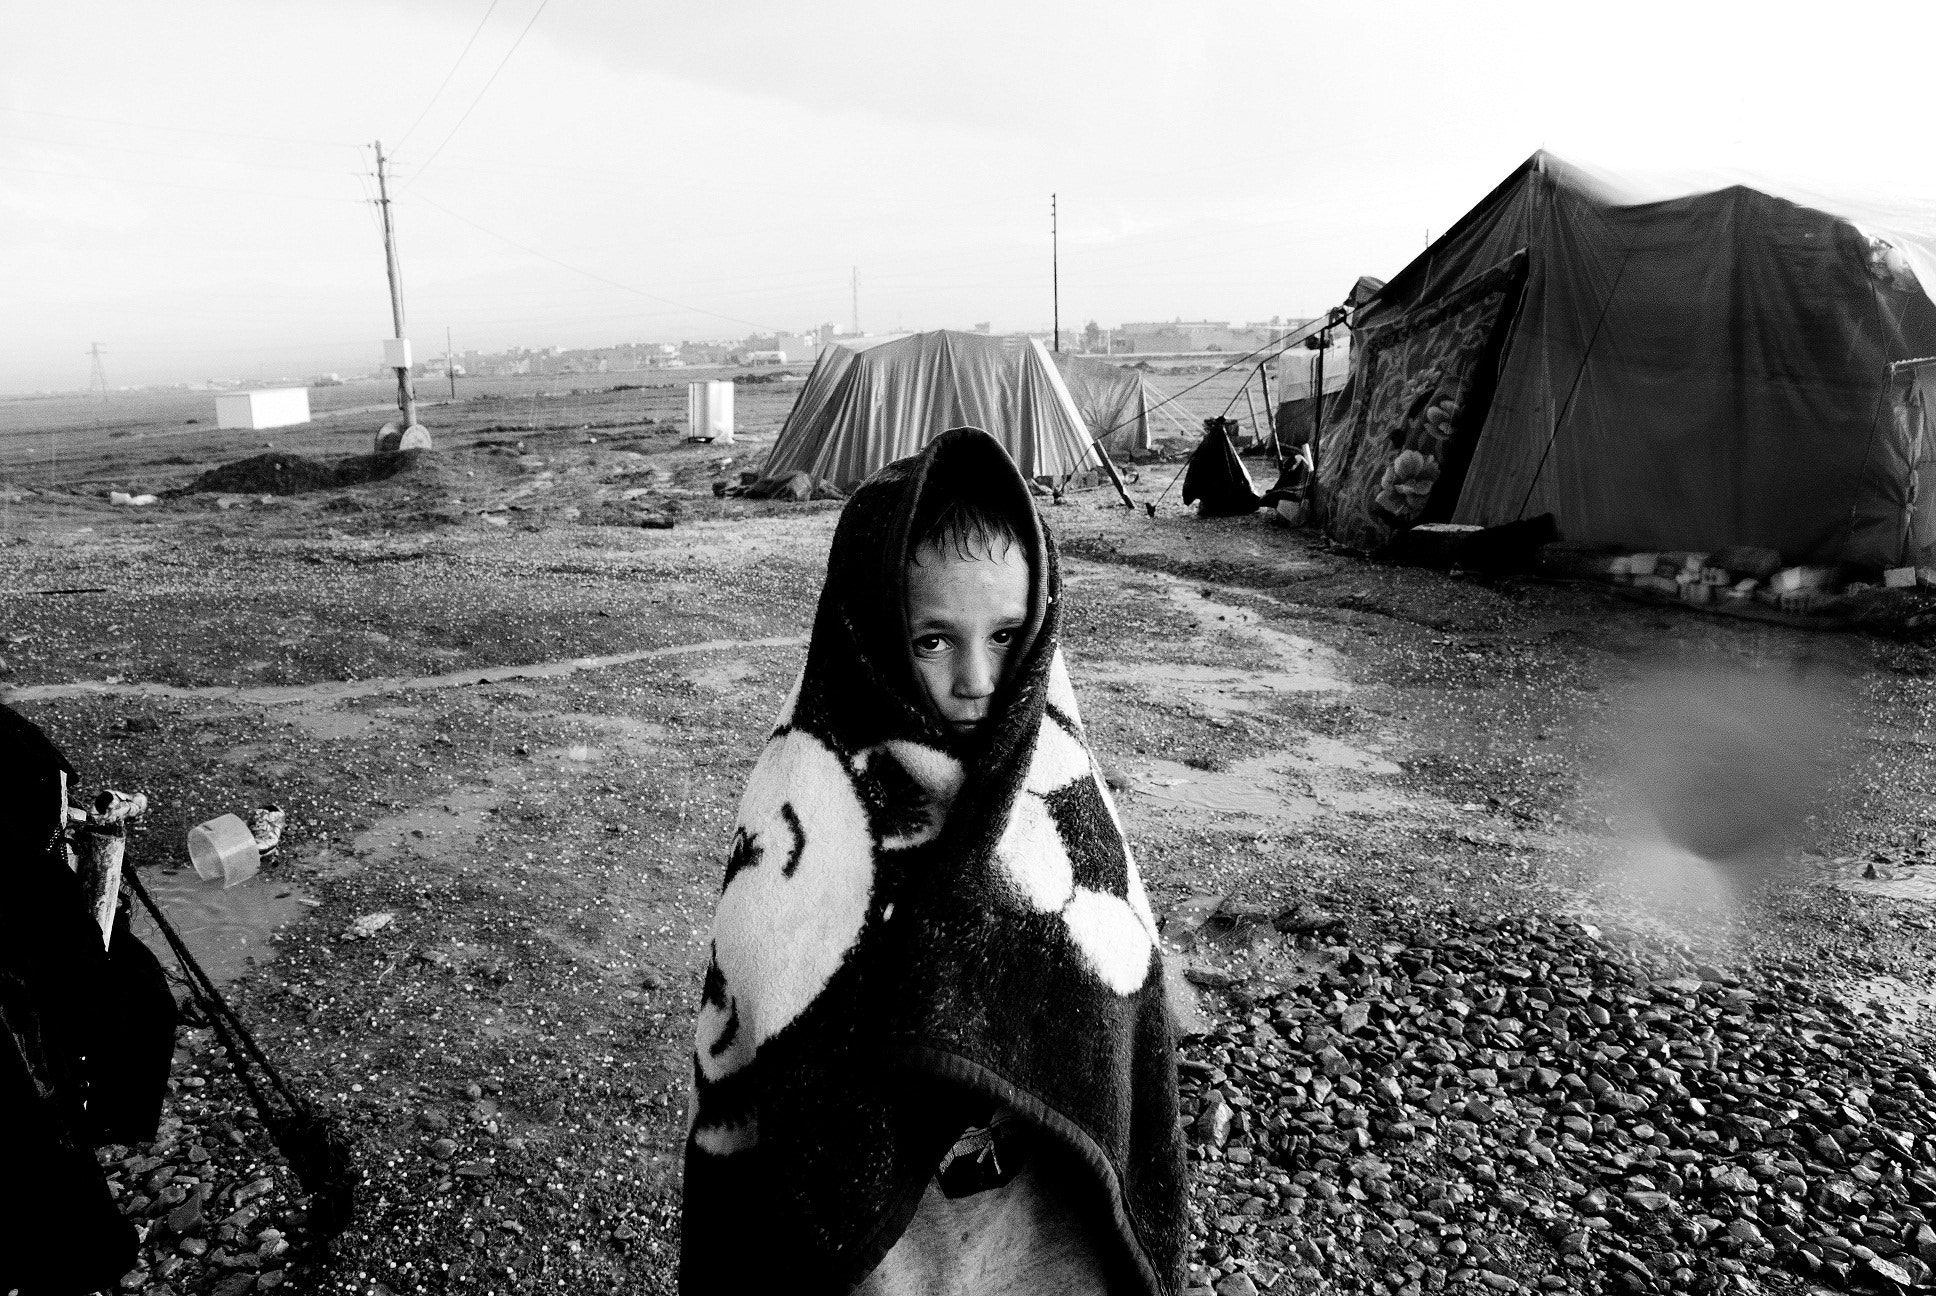 Photograph syrian refugee camp in iraq by sartep othman on 500px